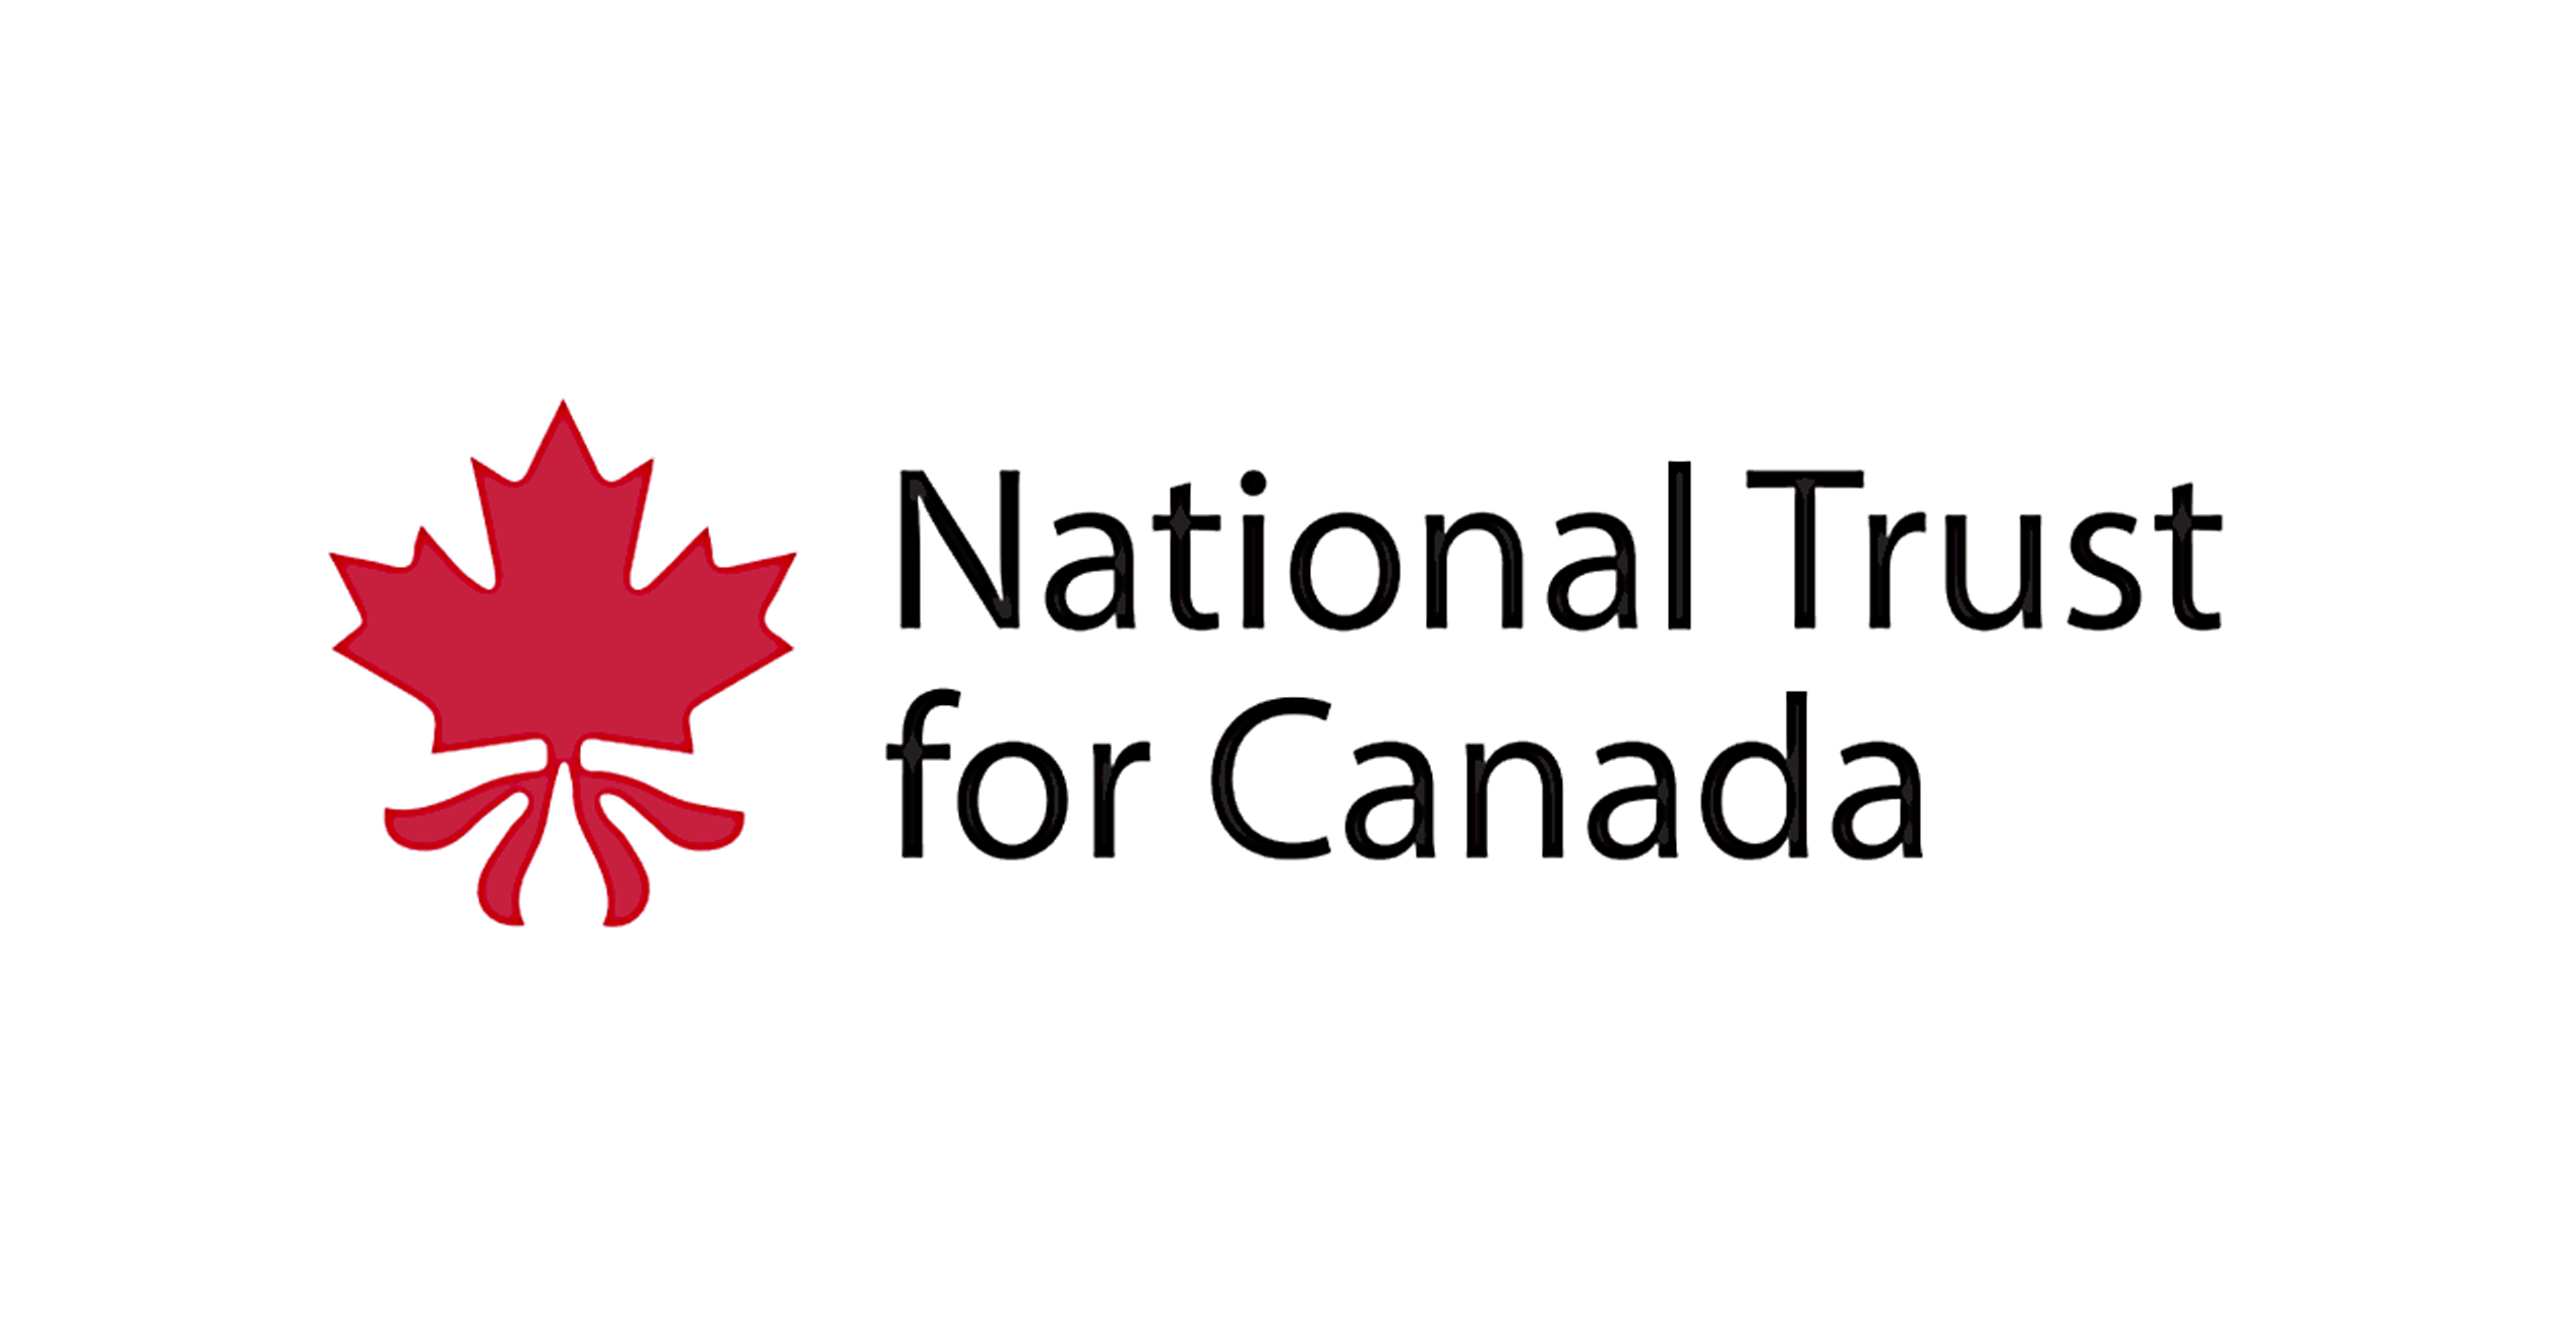 National Trust for Canada logo design